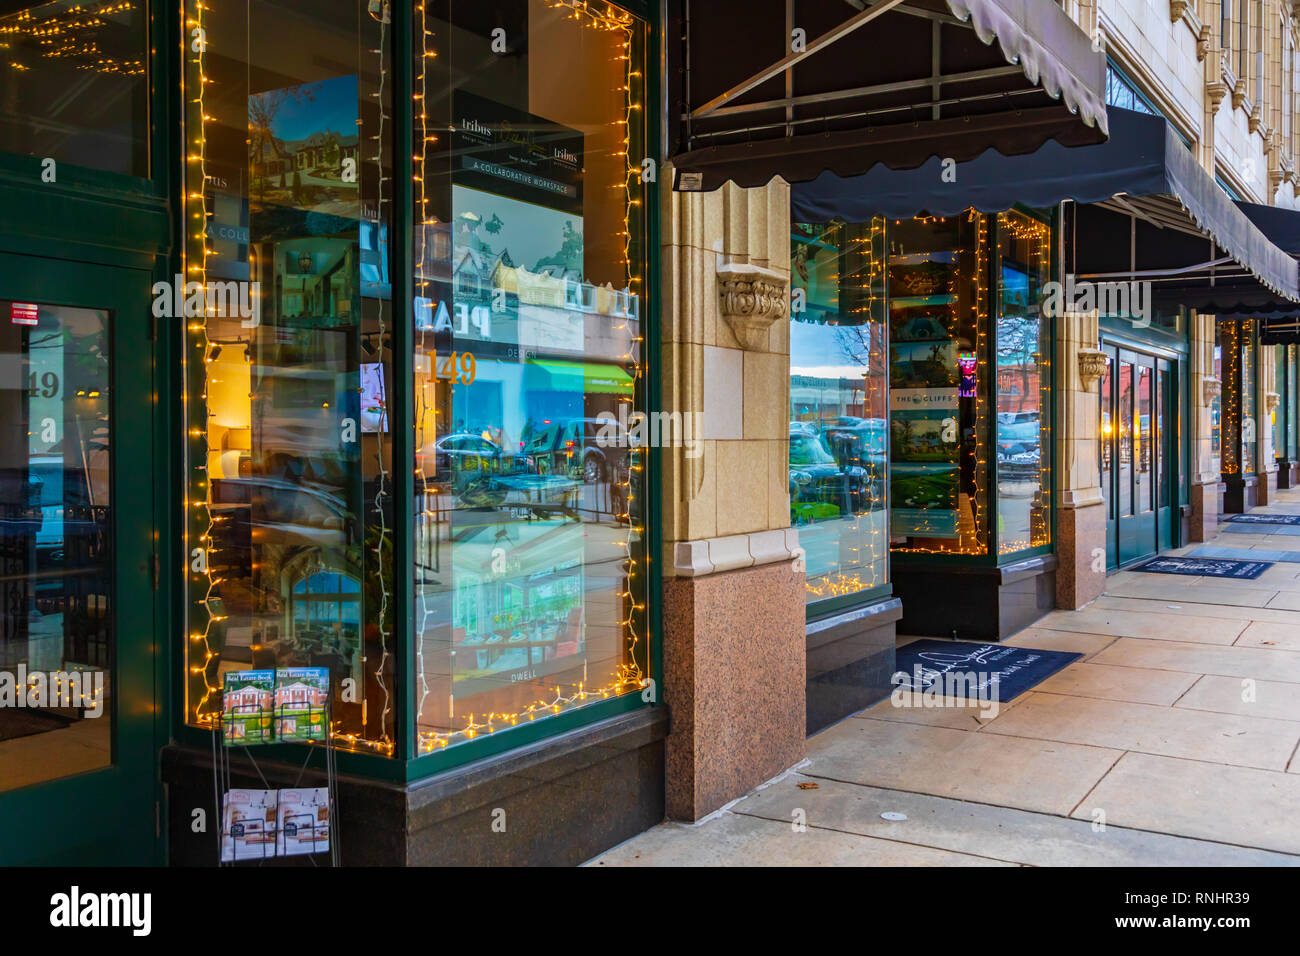 ASHEVILLE, NC, USA-2/16/19: Strings of lights and reflections fom the street shine in realtors' storefront windows along Page St. Stock Photo